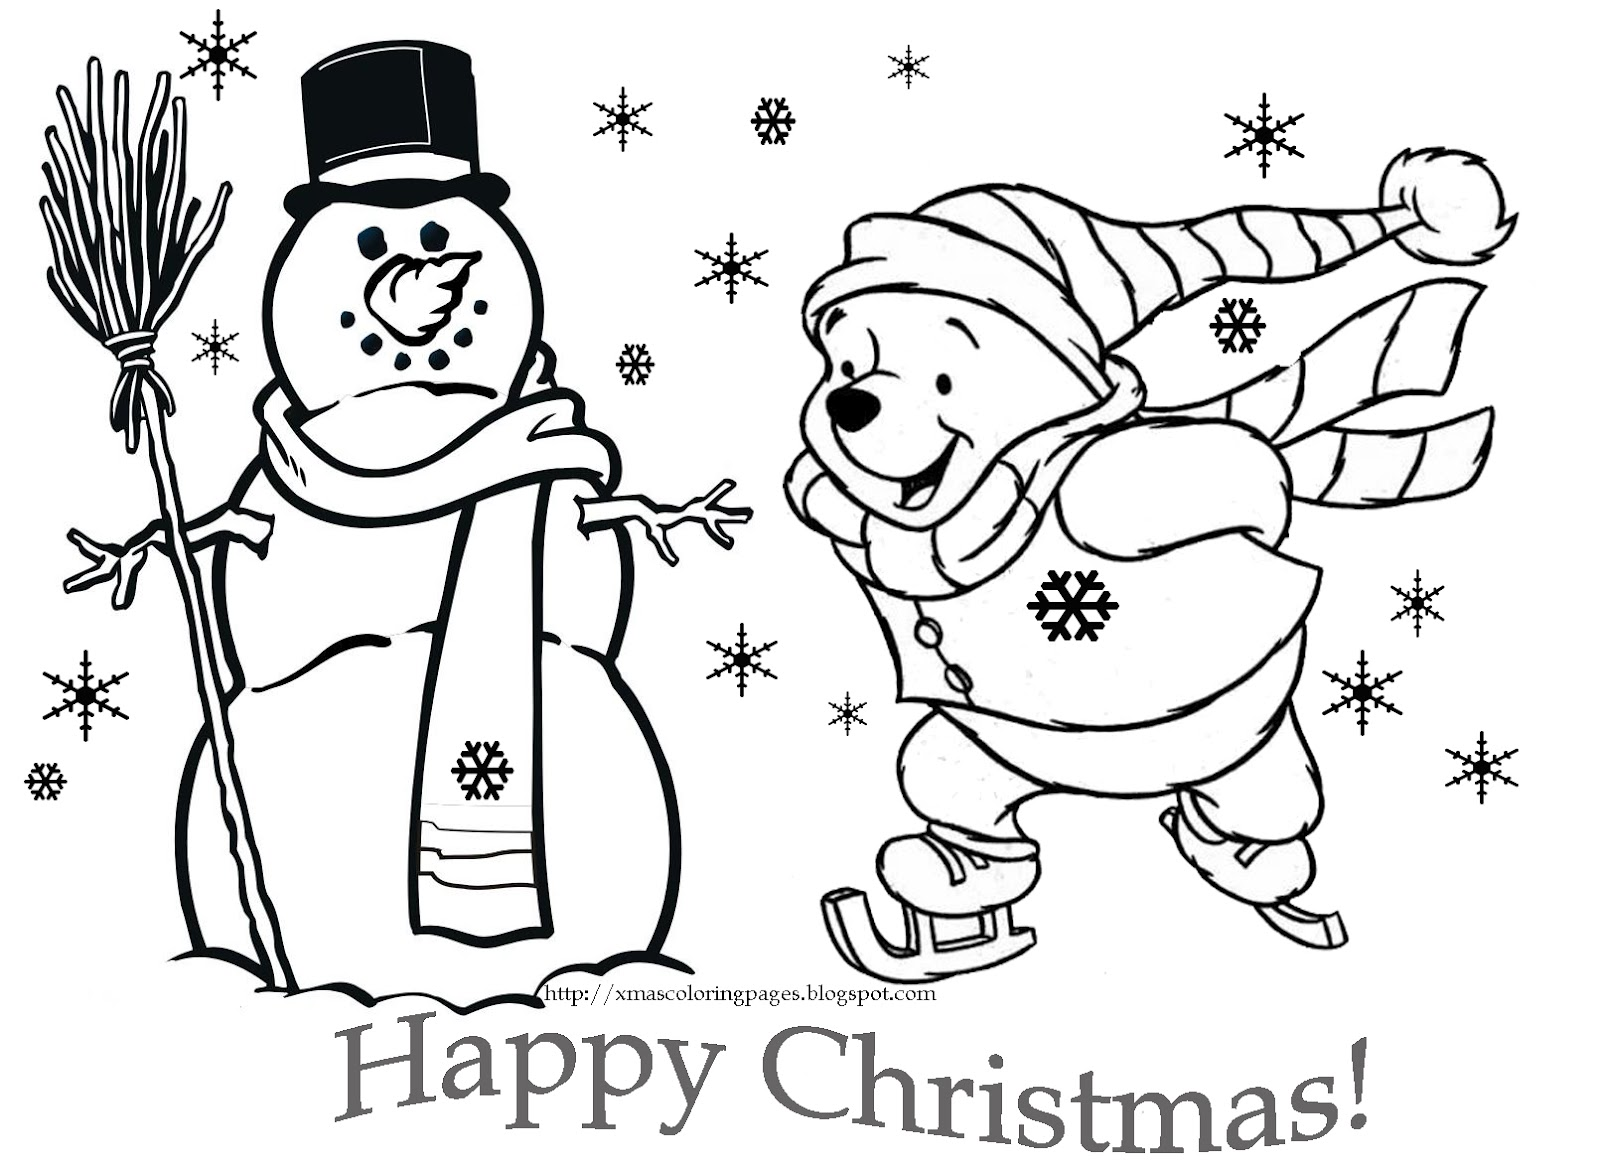 winnie the pooh coloring pages free.html